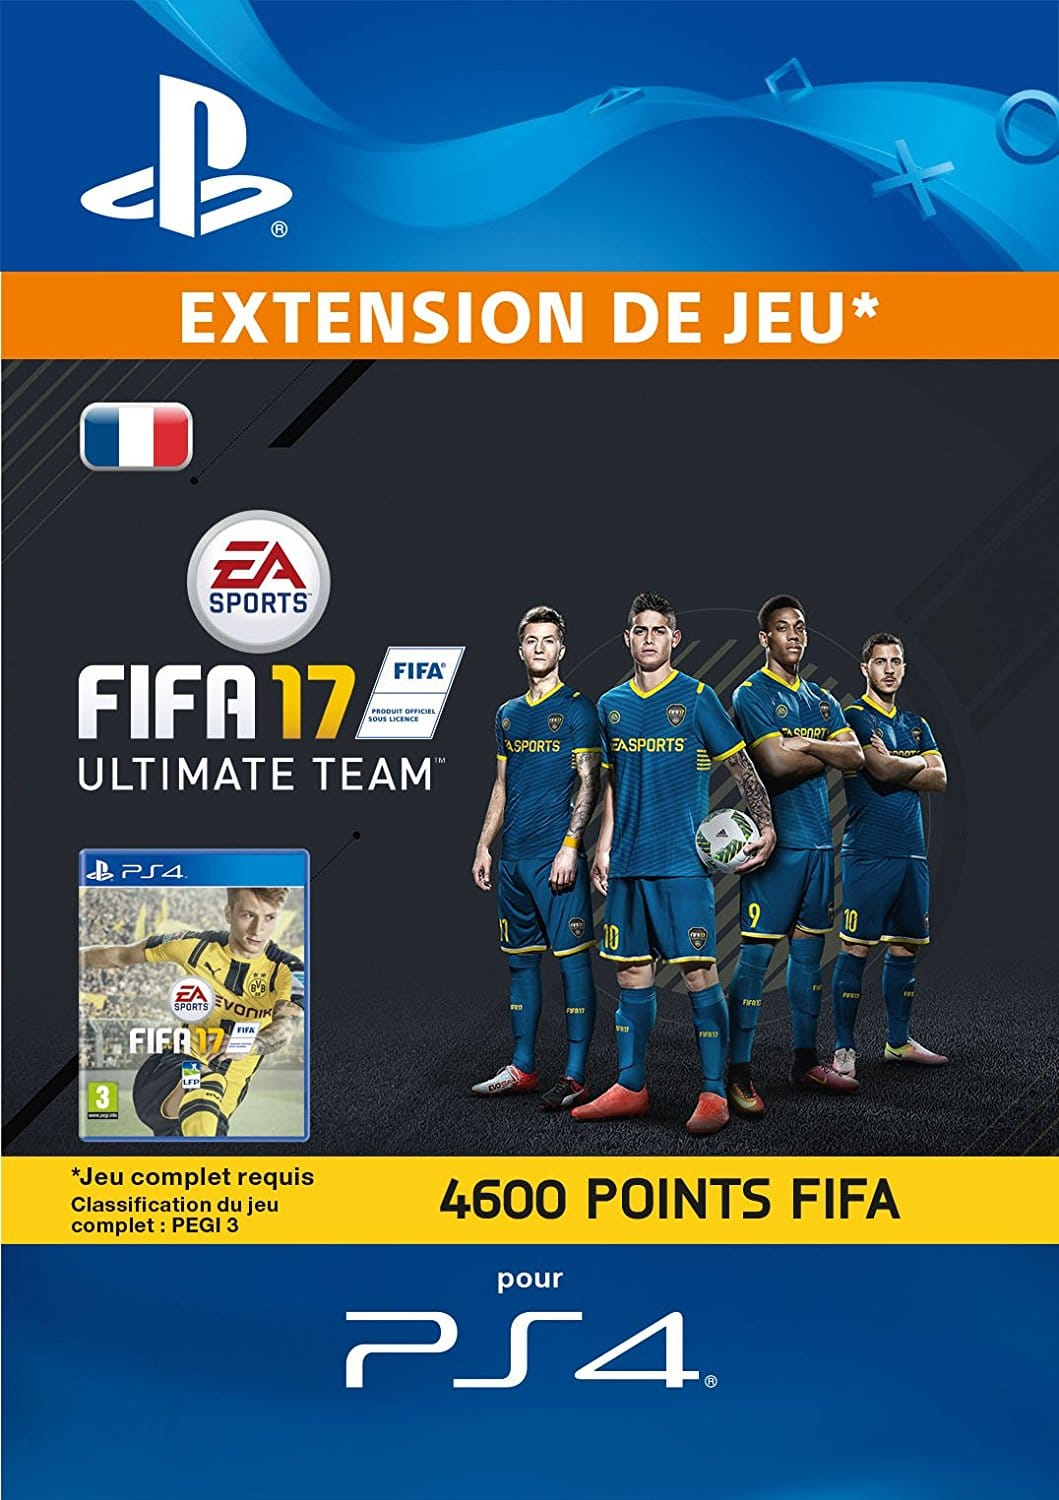 4600 points fifa ps4 FIFA 17